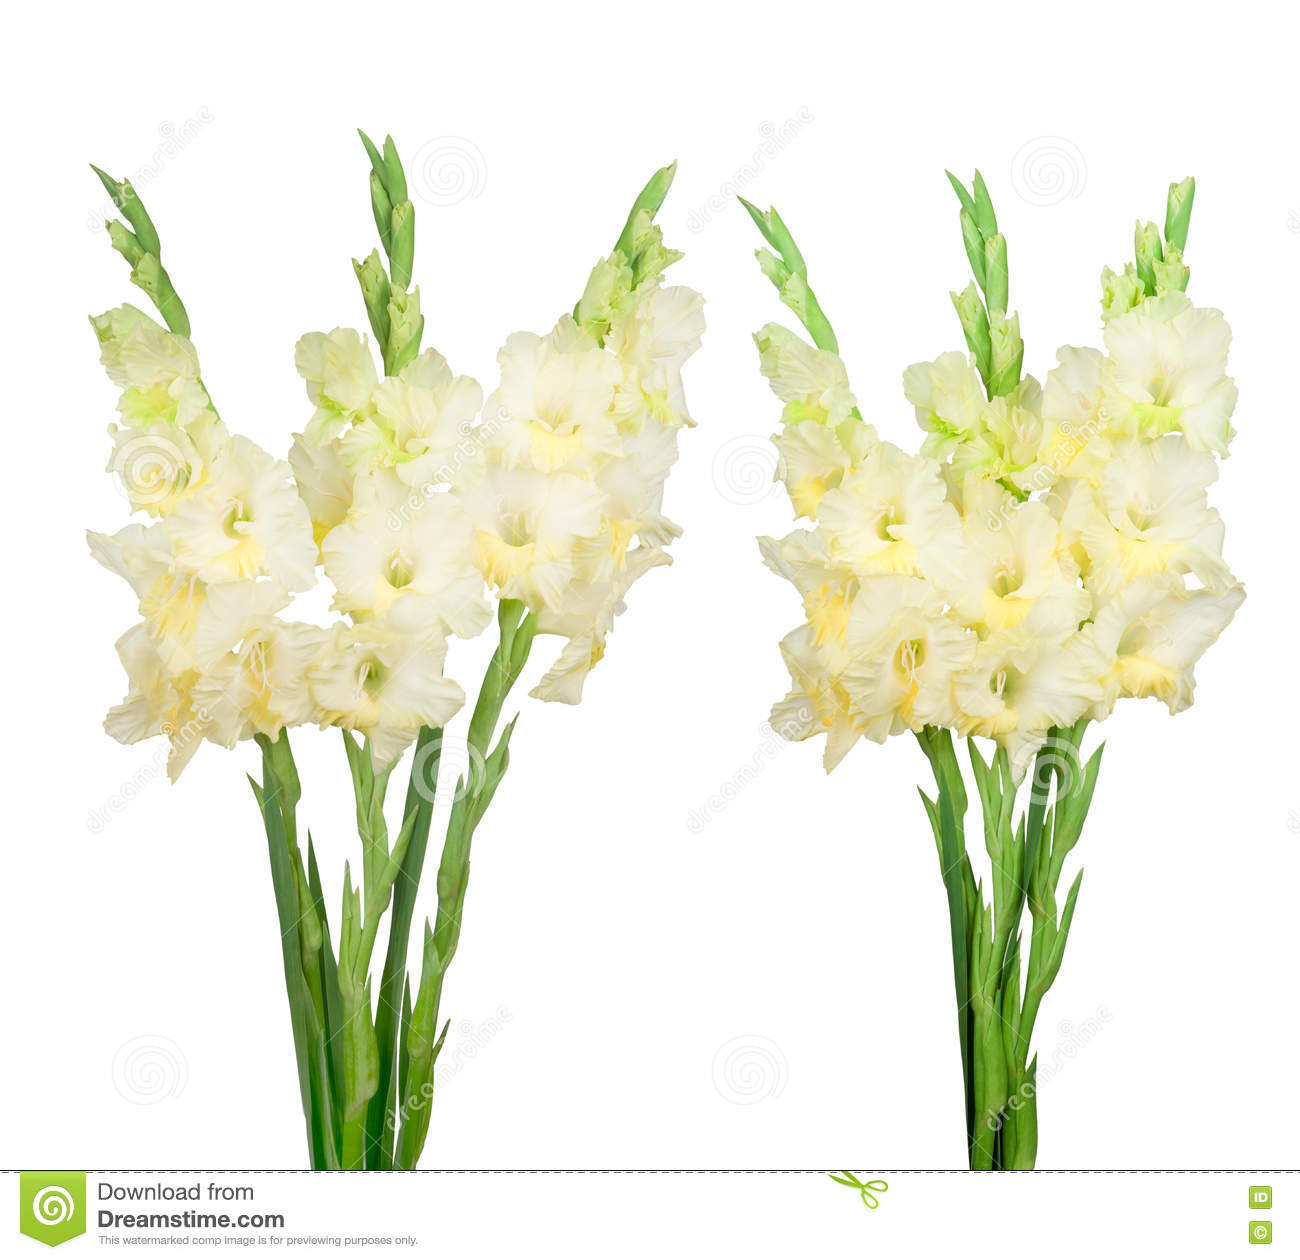 bouquet avec le gla eul jaune image stock image du gladiolus automne 75697381. Black Bedroom Furniture Sets. Home Design Ideas